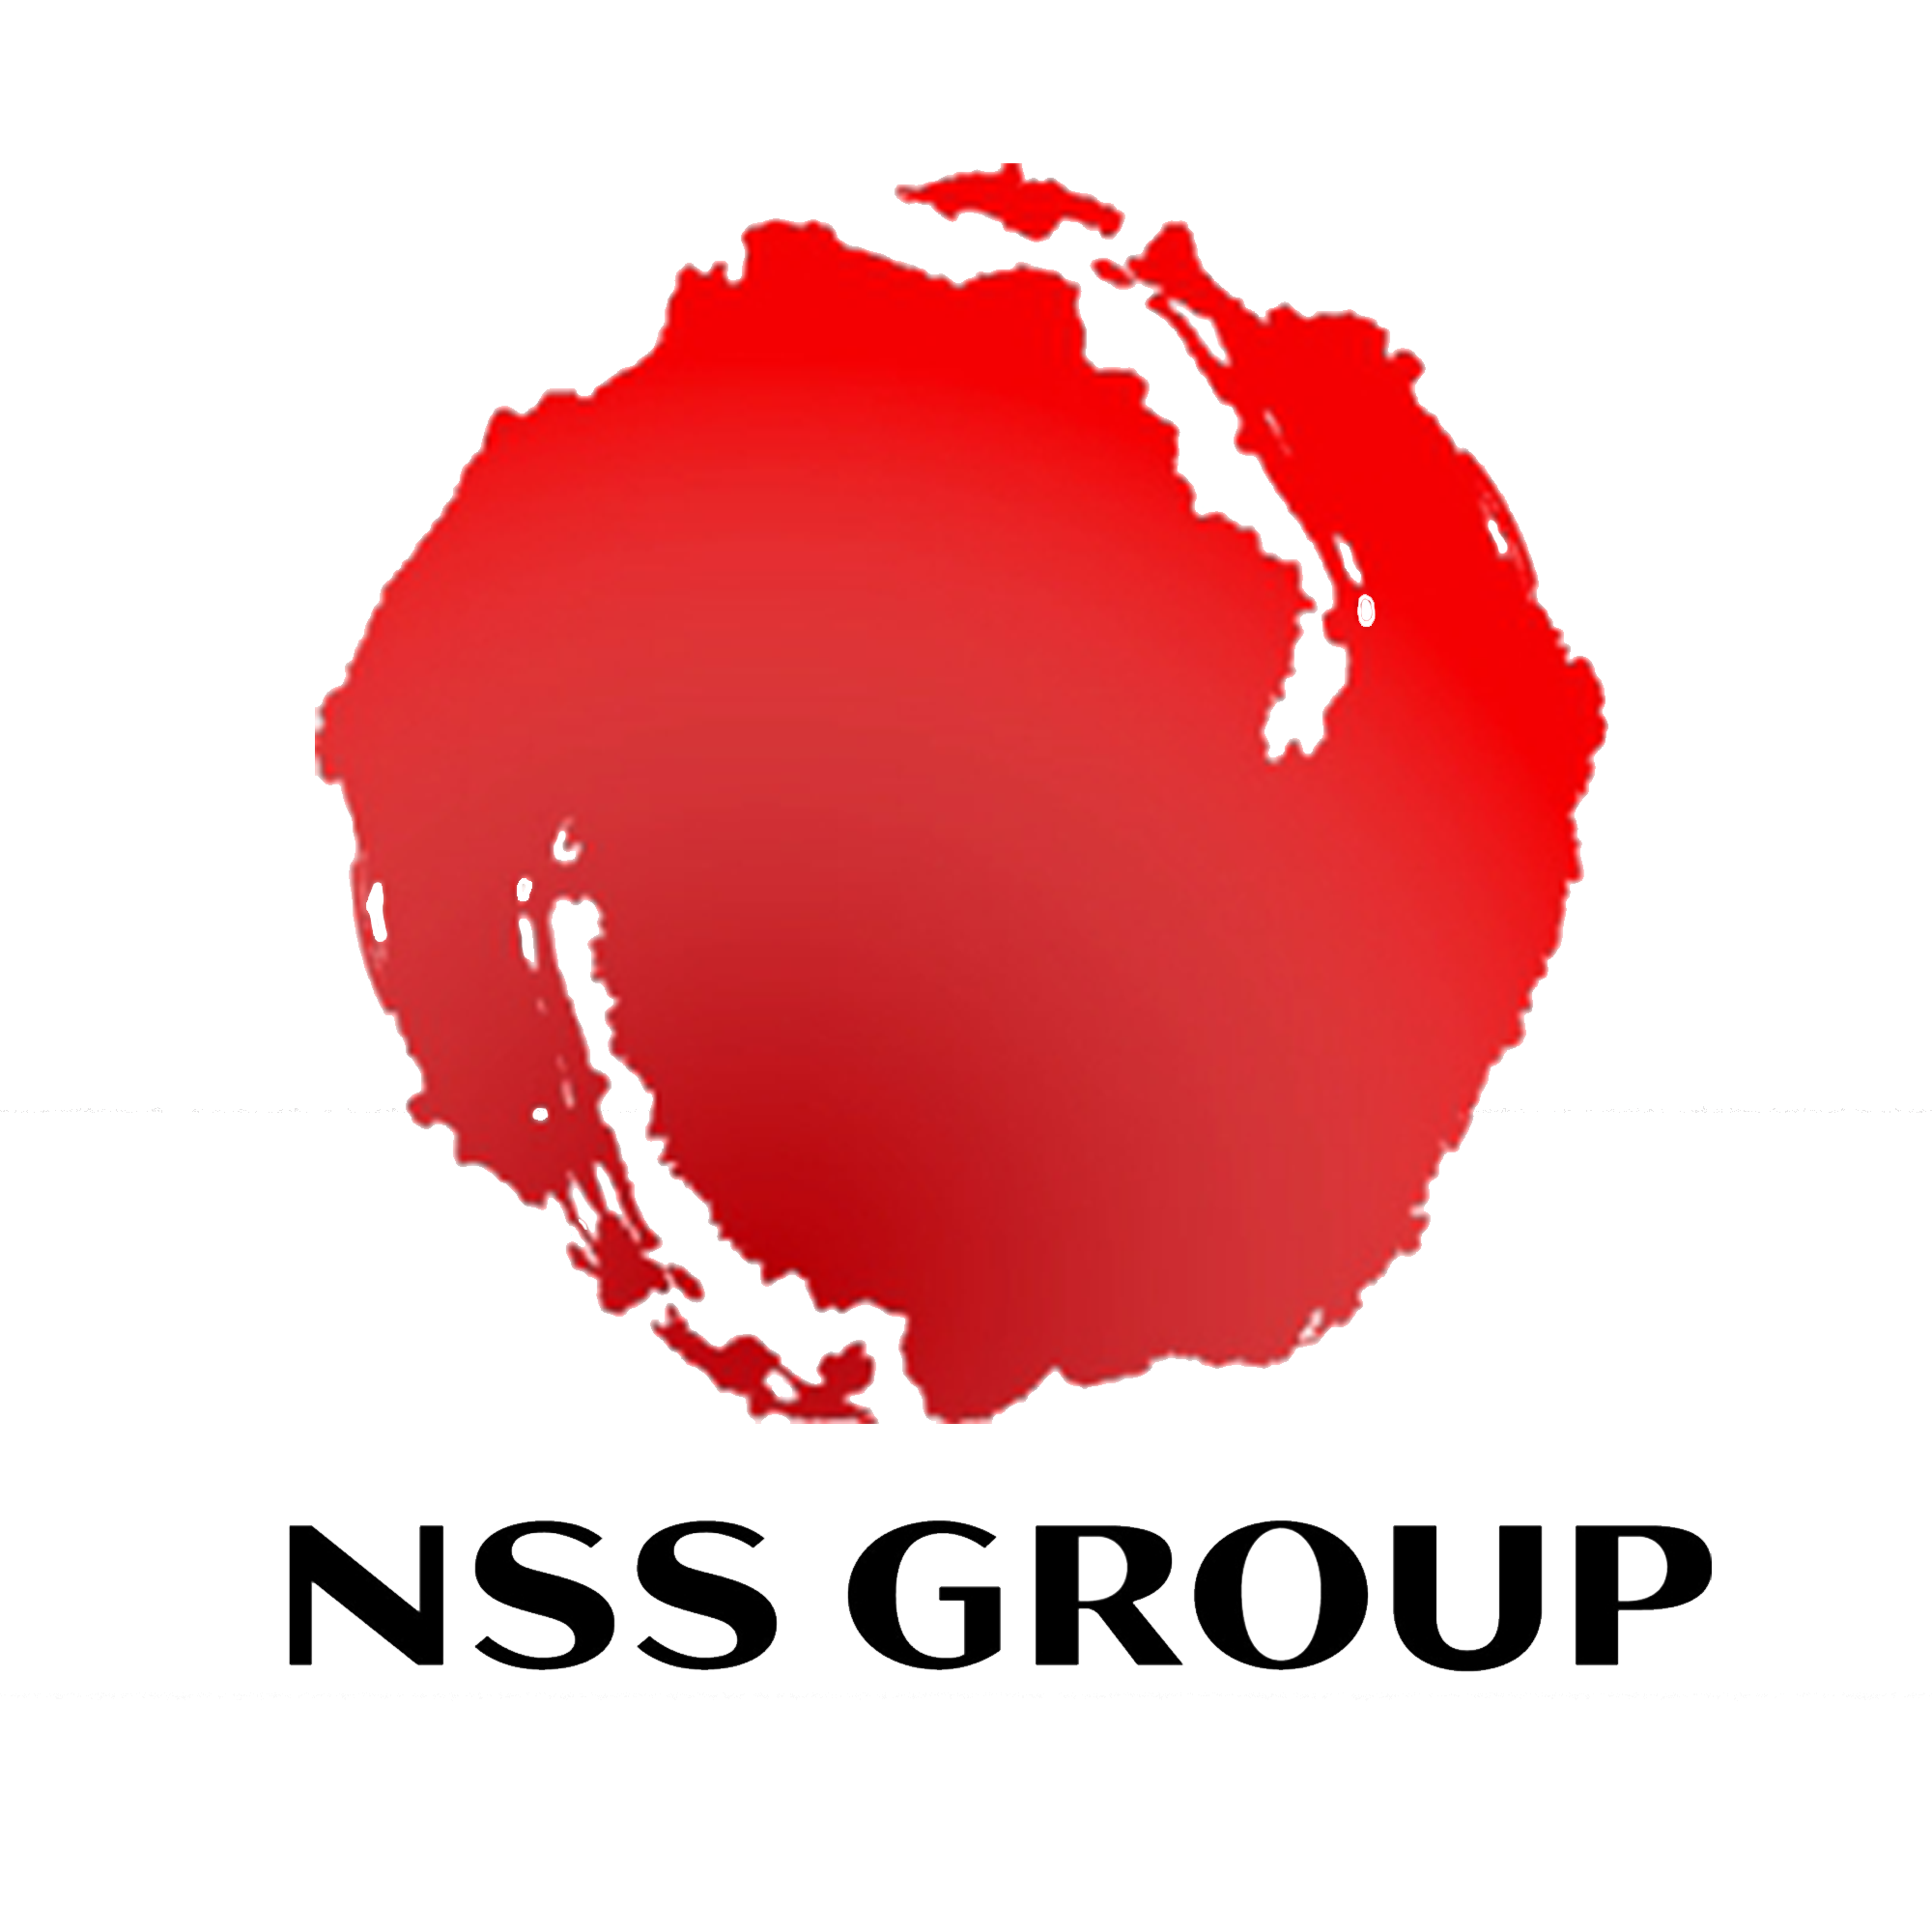 The NSS Group Web Hosting Services - The Ugly Writers